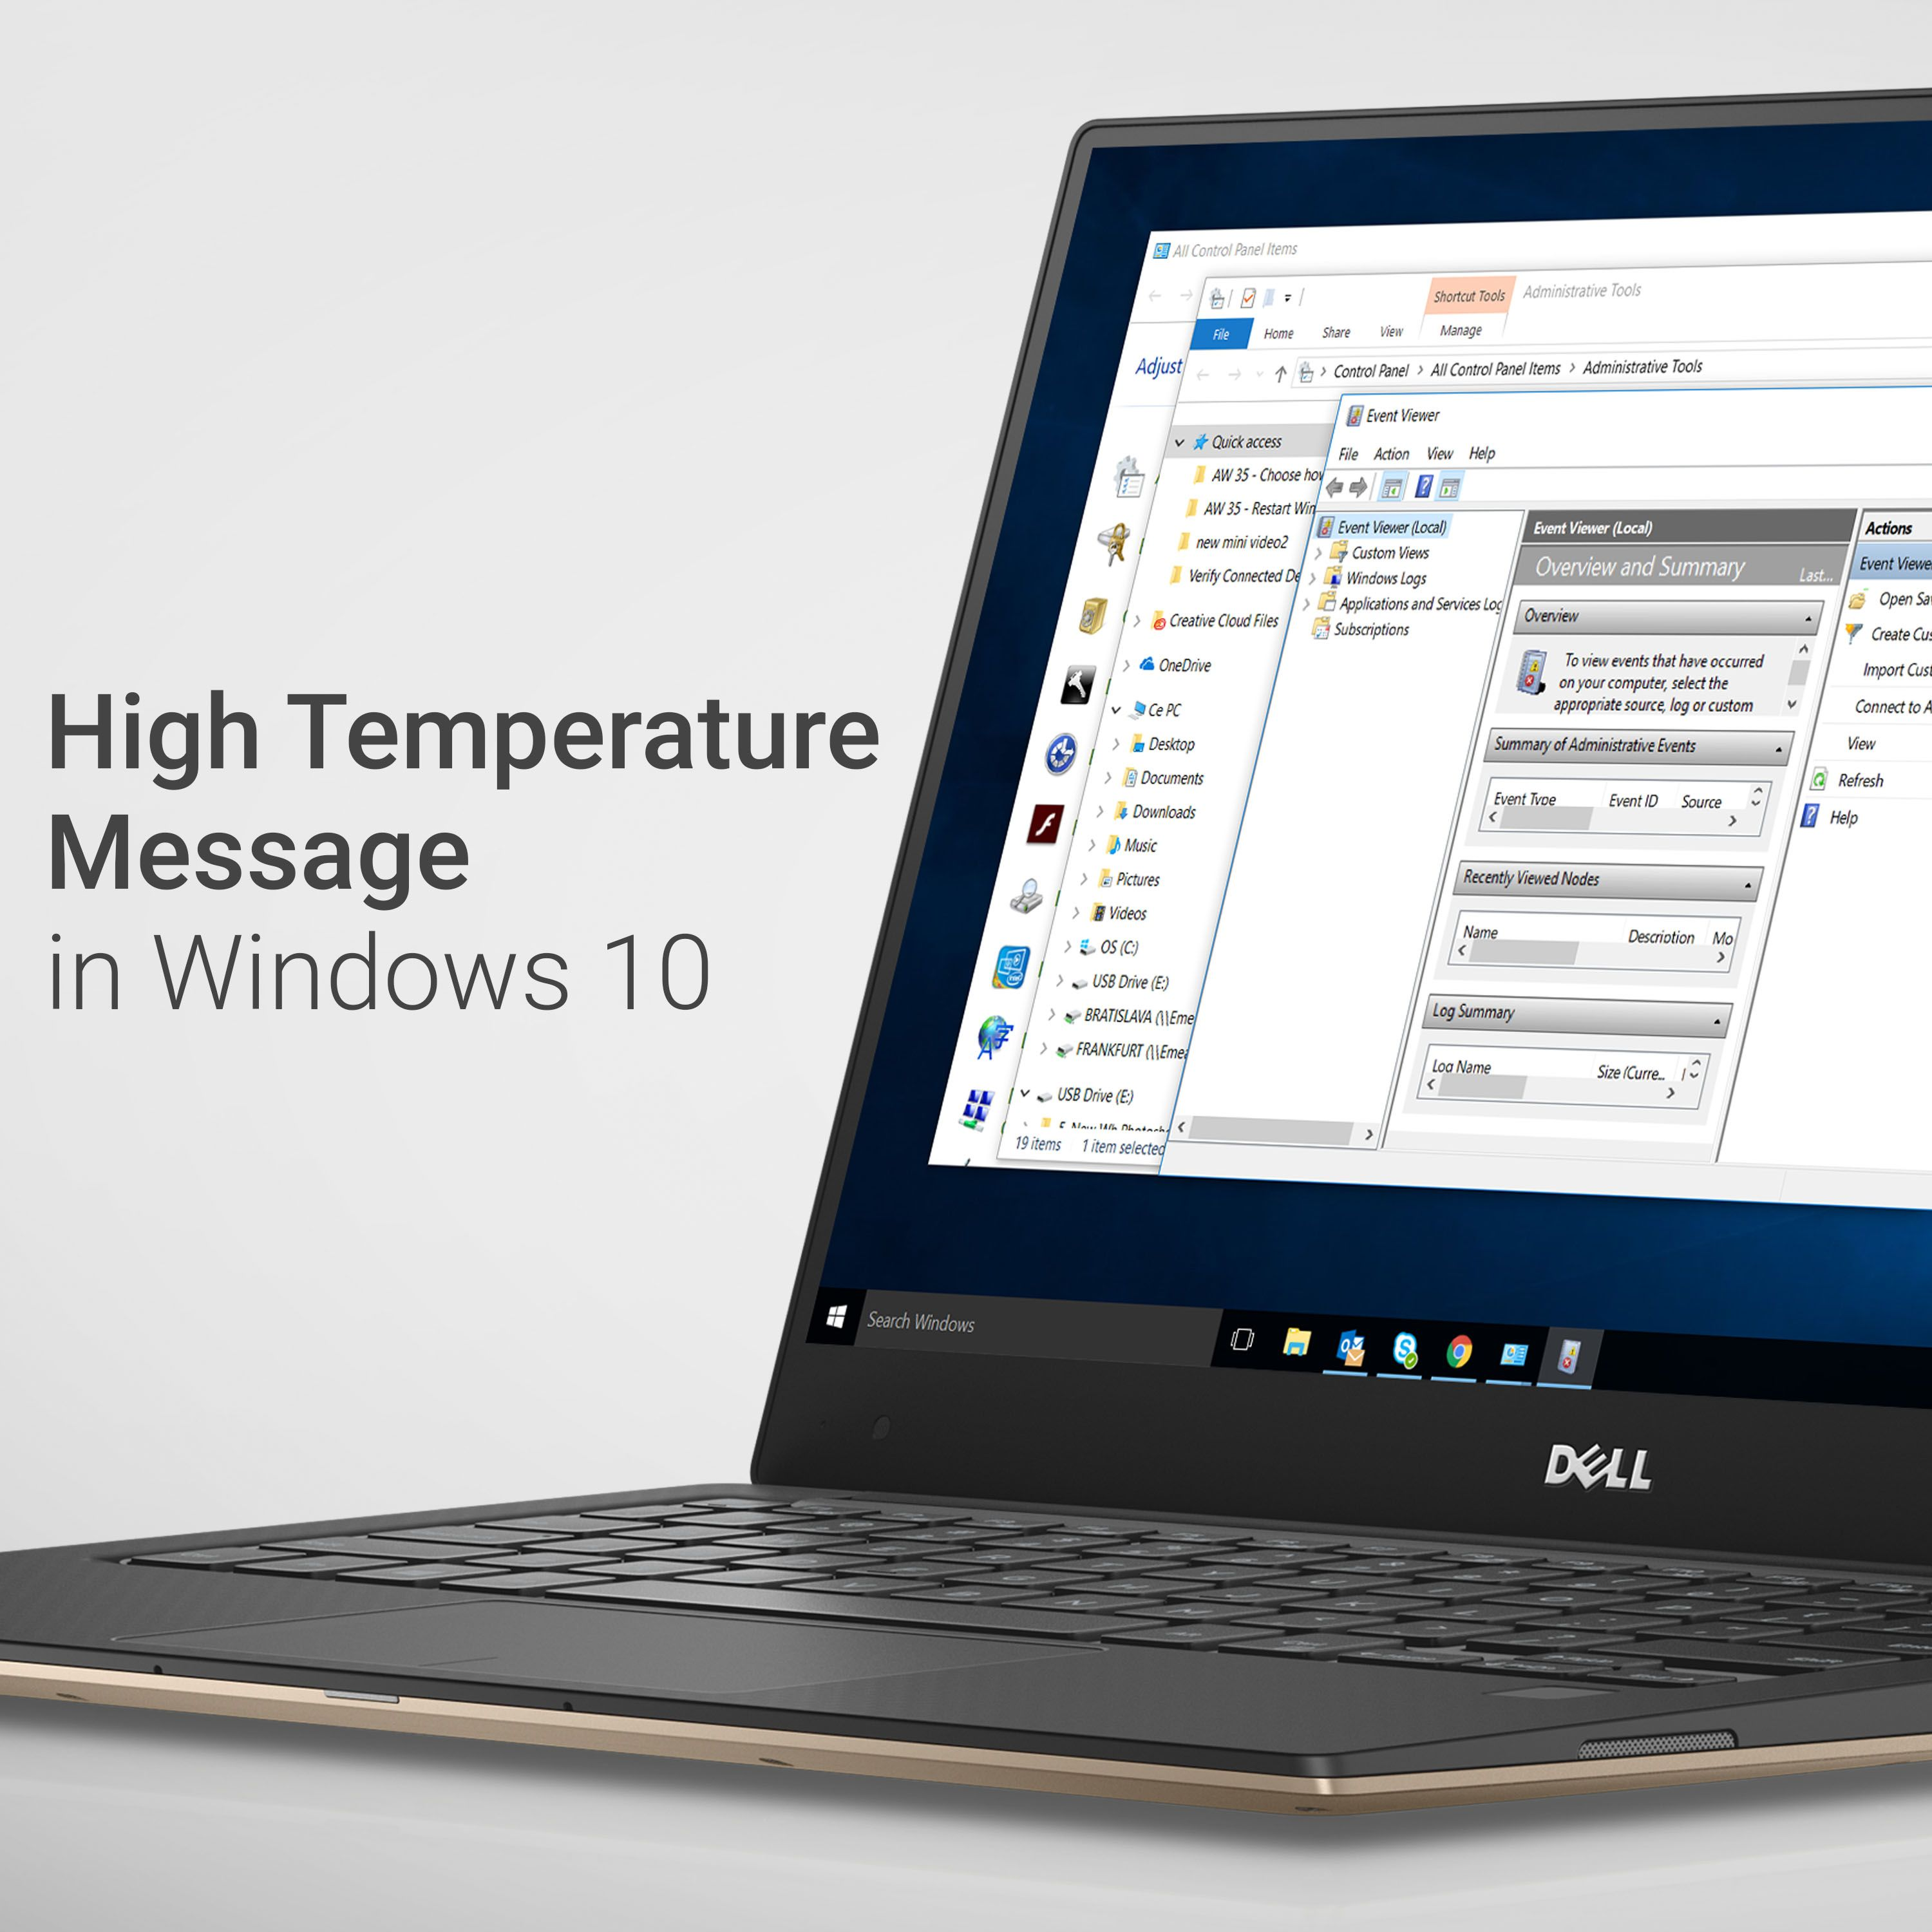 Have you received a #Windows10 message about high